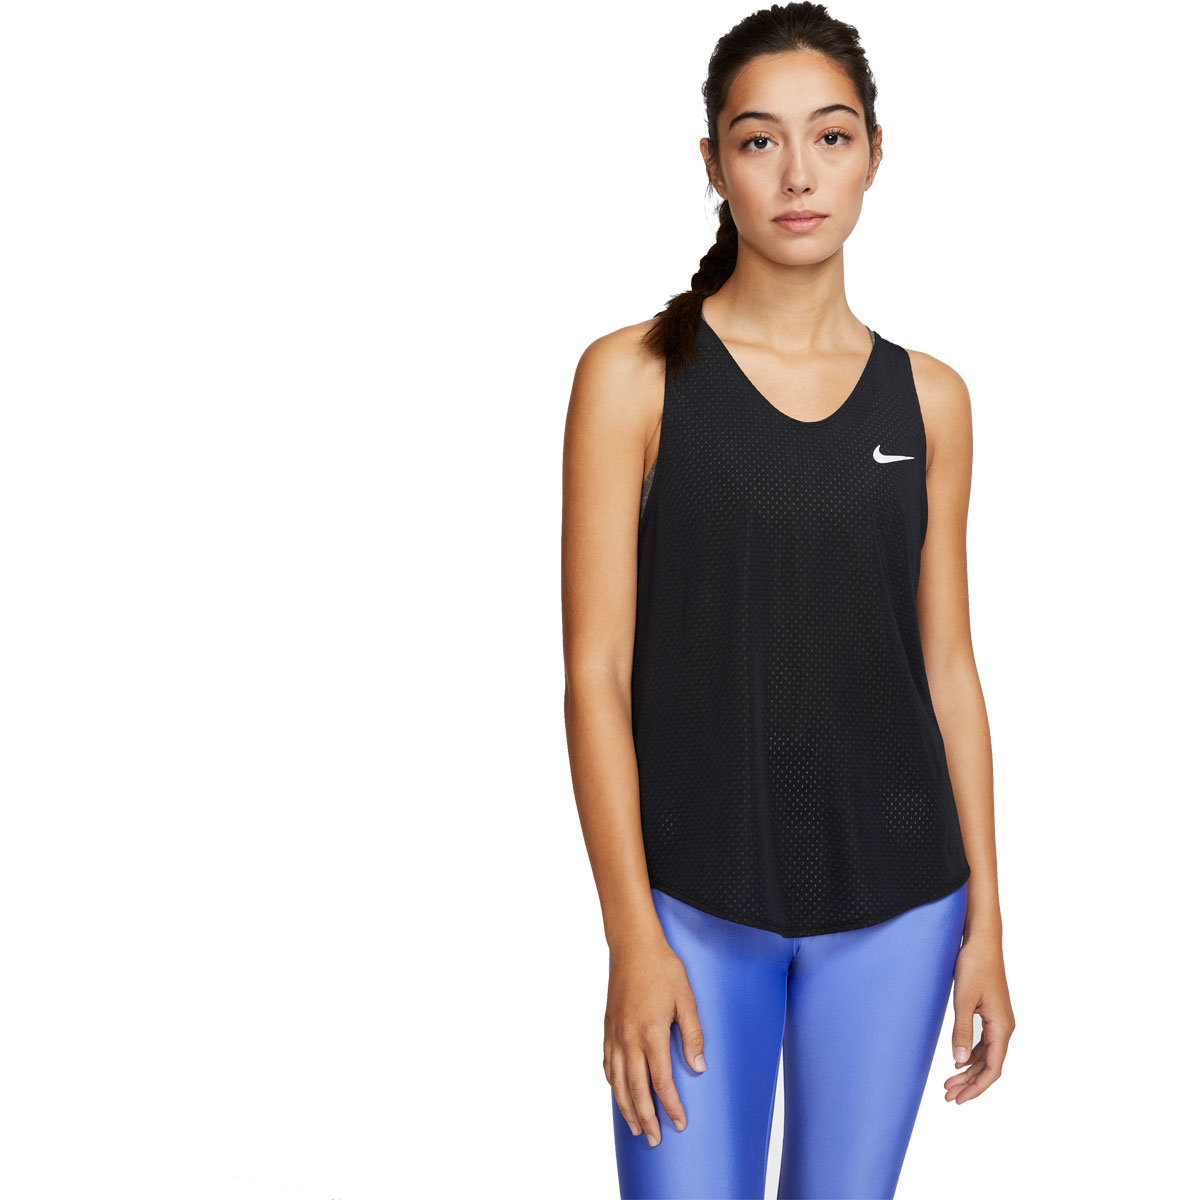 Women's Nike Breathe Running Tank - Color: Black/Reflective Silver - Size: XS, Black/Reflective Silver, large, image 1